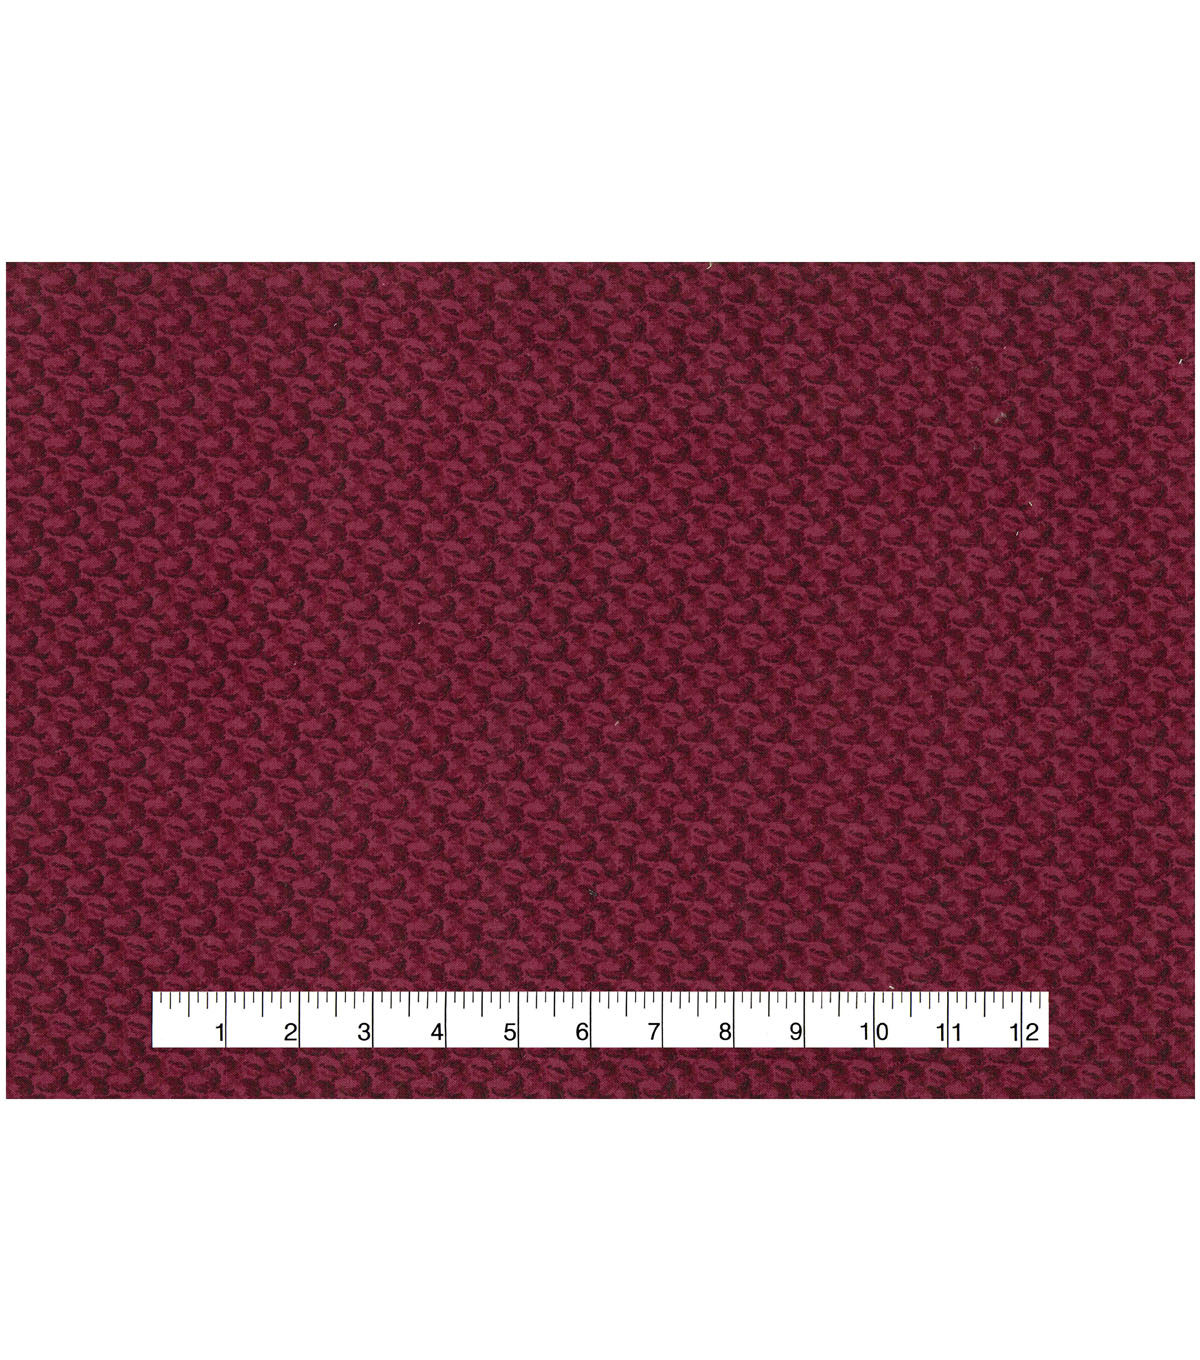 Premium Wide Cotton Fabric-Red Vine Scrolls